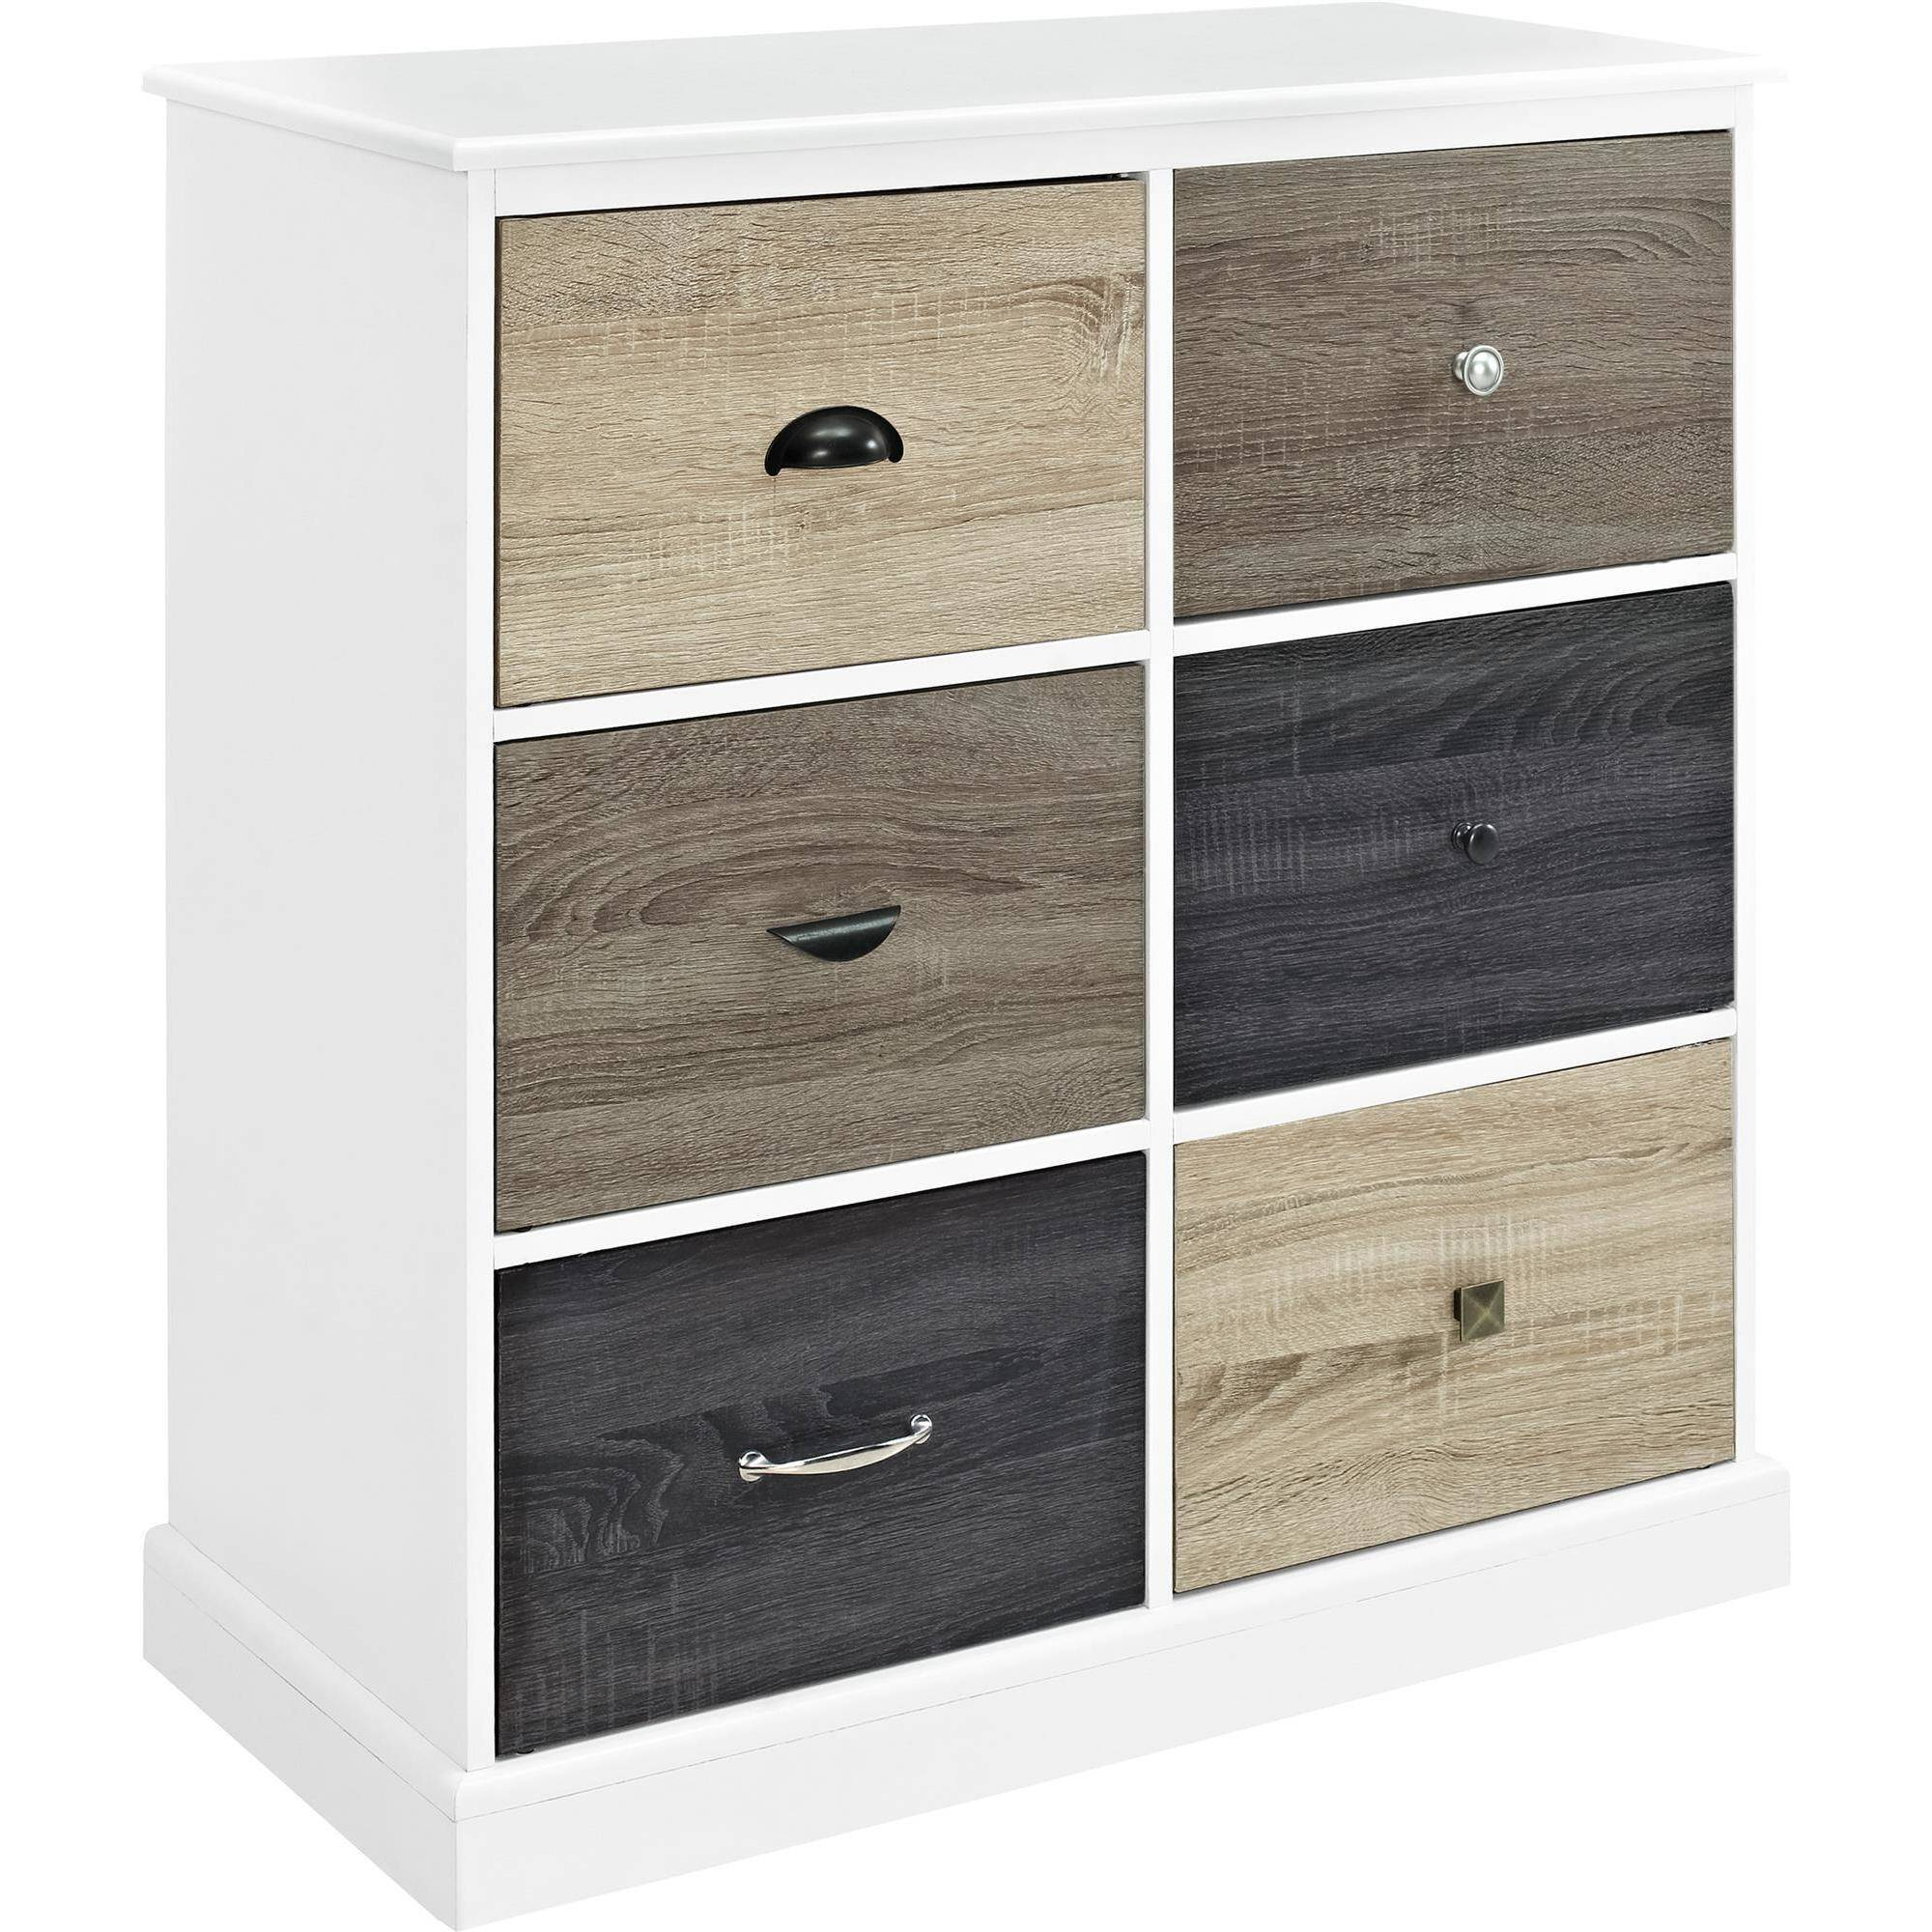 Contemporary Wood Storage Cabinets With Doors Home Mercer 6 Door Cabinet Multicolored Fronts White Walmartcom For Inspiration